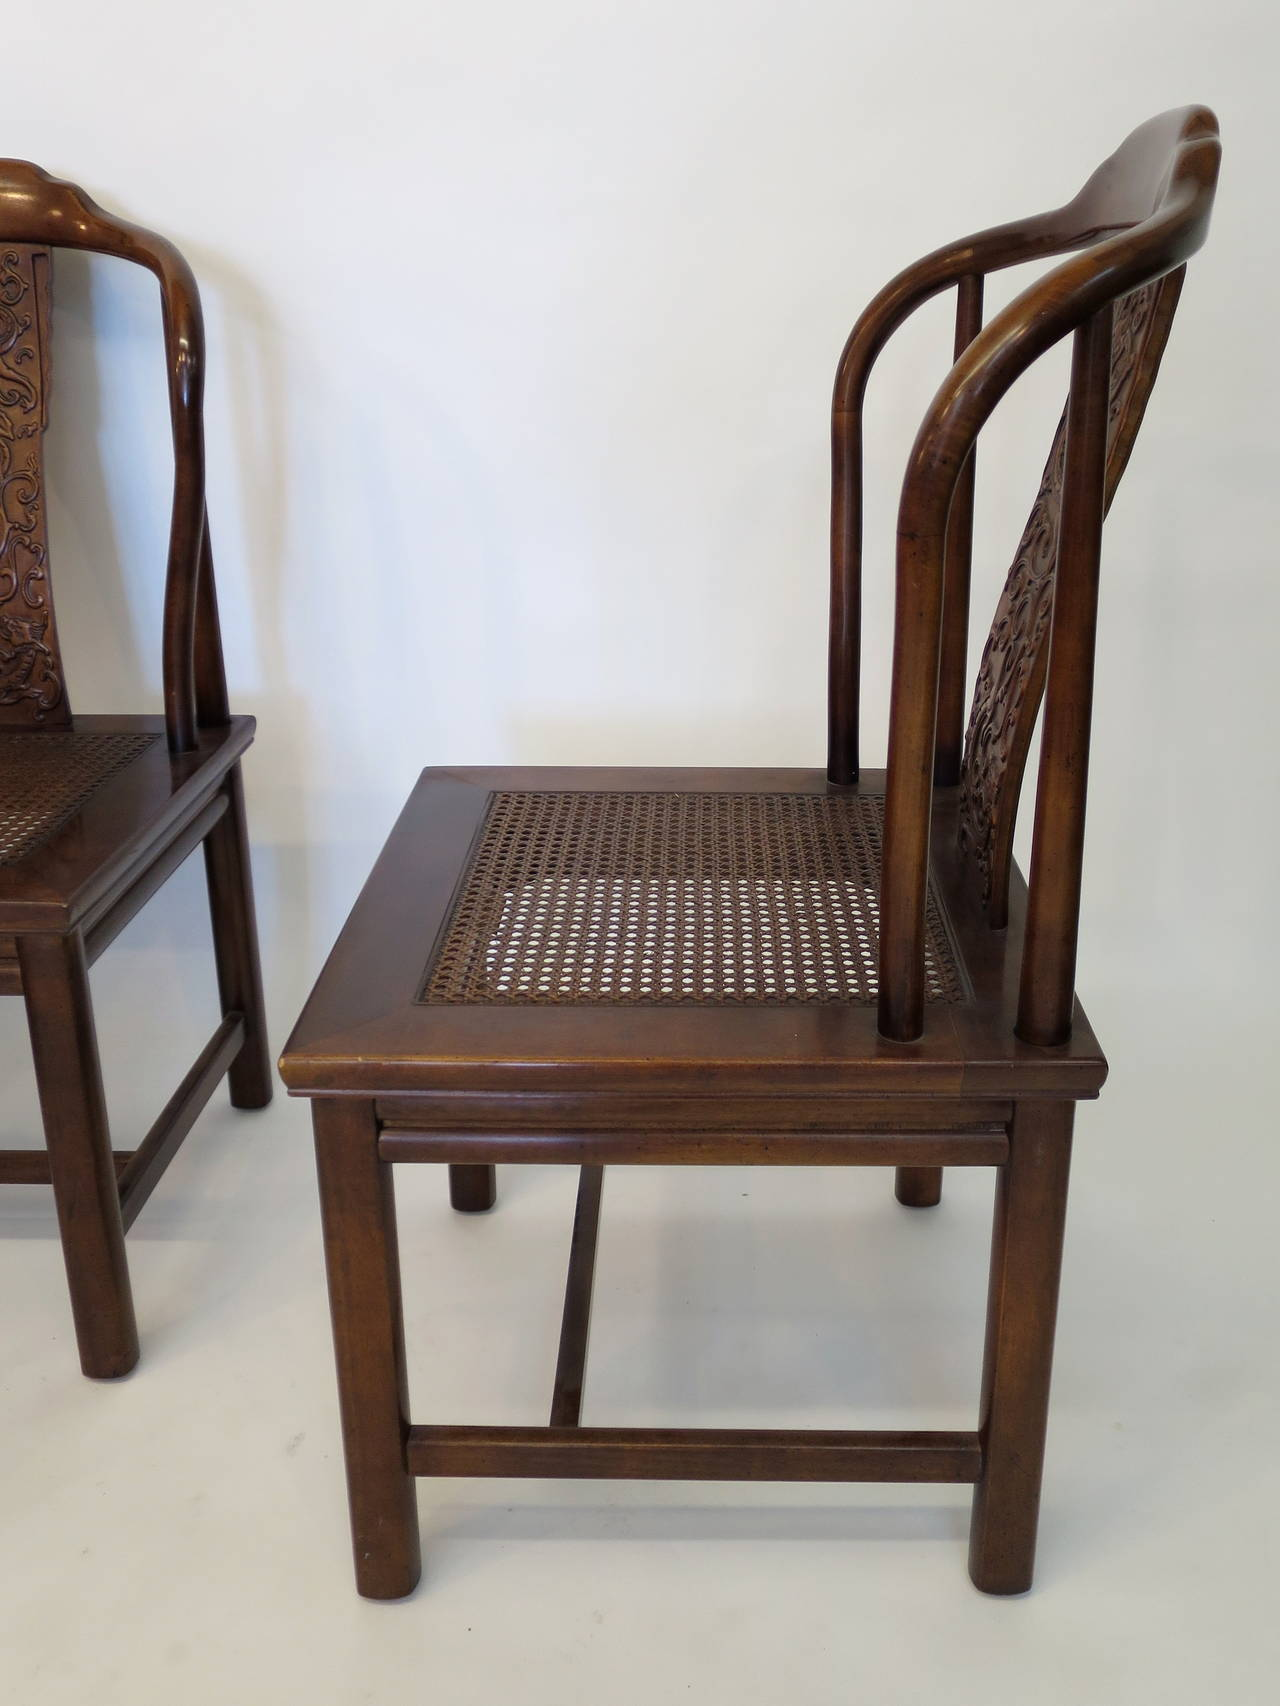 henredon asian dining chairs evenflo compact high chair set of four inspired by furniture at